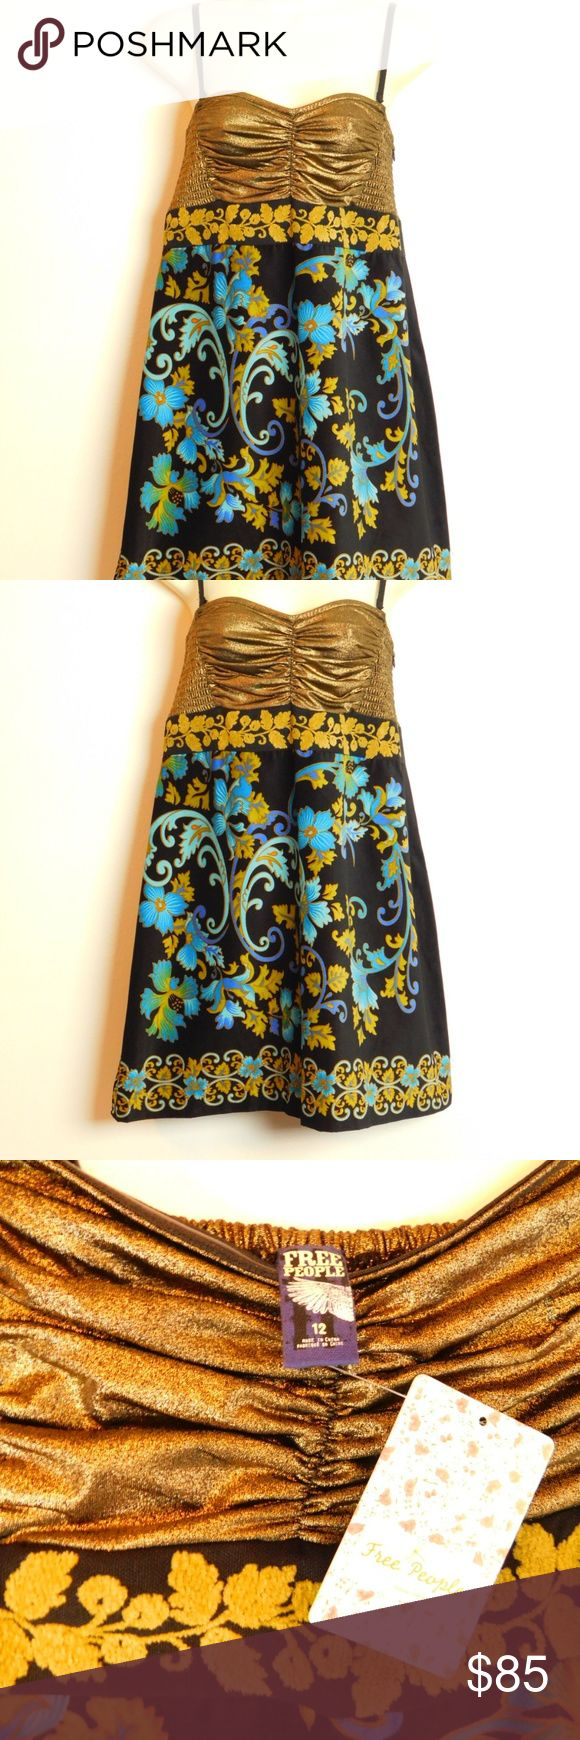 """NWT Free People Velvet Metallic Party Dress Sz 12 """"Free People"""" boho chic multi print party dress Women's size 12 regular Color:   Black Gold Blue Green Length 32"""", Bust 14"""" across NWT New With Tags condition $138 Retail  Dress can be worn with or without straps Removeable/ adjustable shoulder straps Gold metallic smocked elasticized ruched bodice Hidden side seam zip closure Textured brocade waist detailing Printed velvet a-line skirt Bodice is lined, skirt not lined  Fabric & Care Bodice…"""